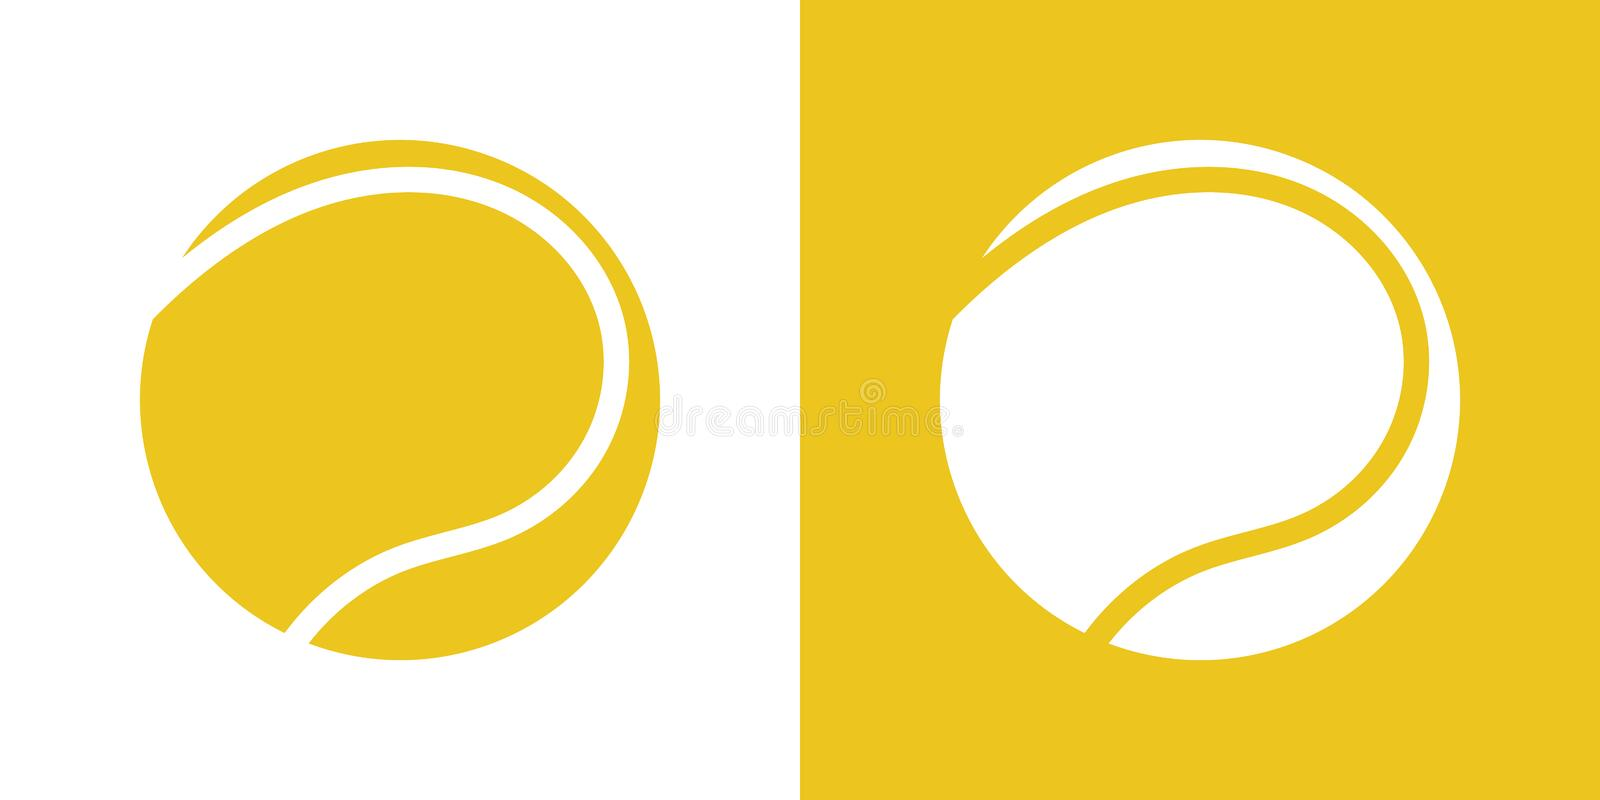 A set of two variations of simple tennis ball icons. On white and on a yellow background. 10 eps stock illustration